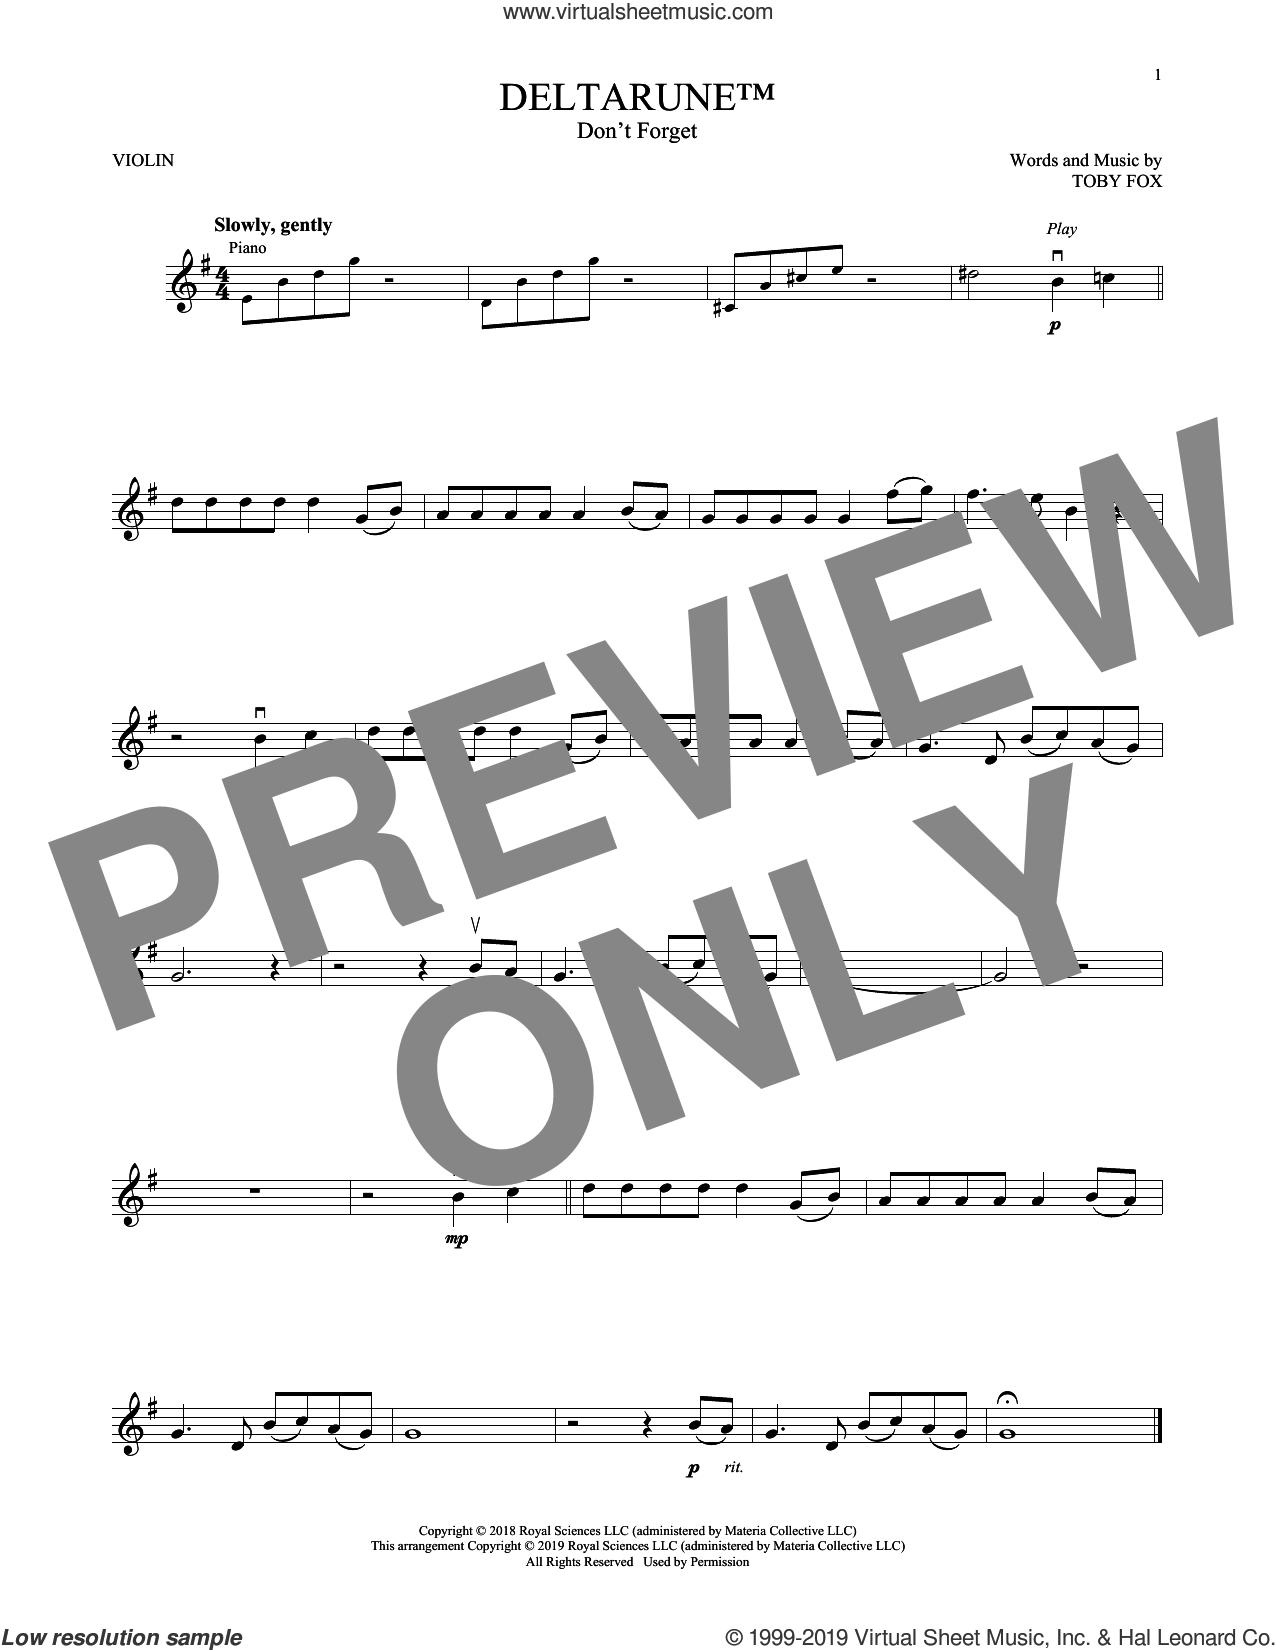 Don't Forget (from Deltarune) sheet music for violin solo by Toby Fox, intermediate skill level